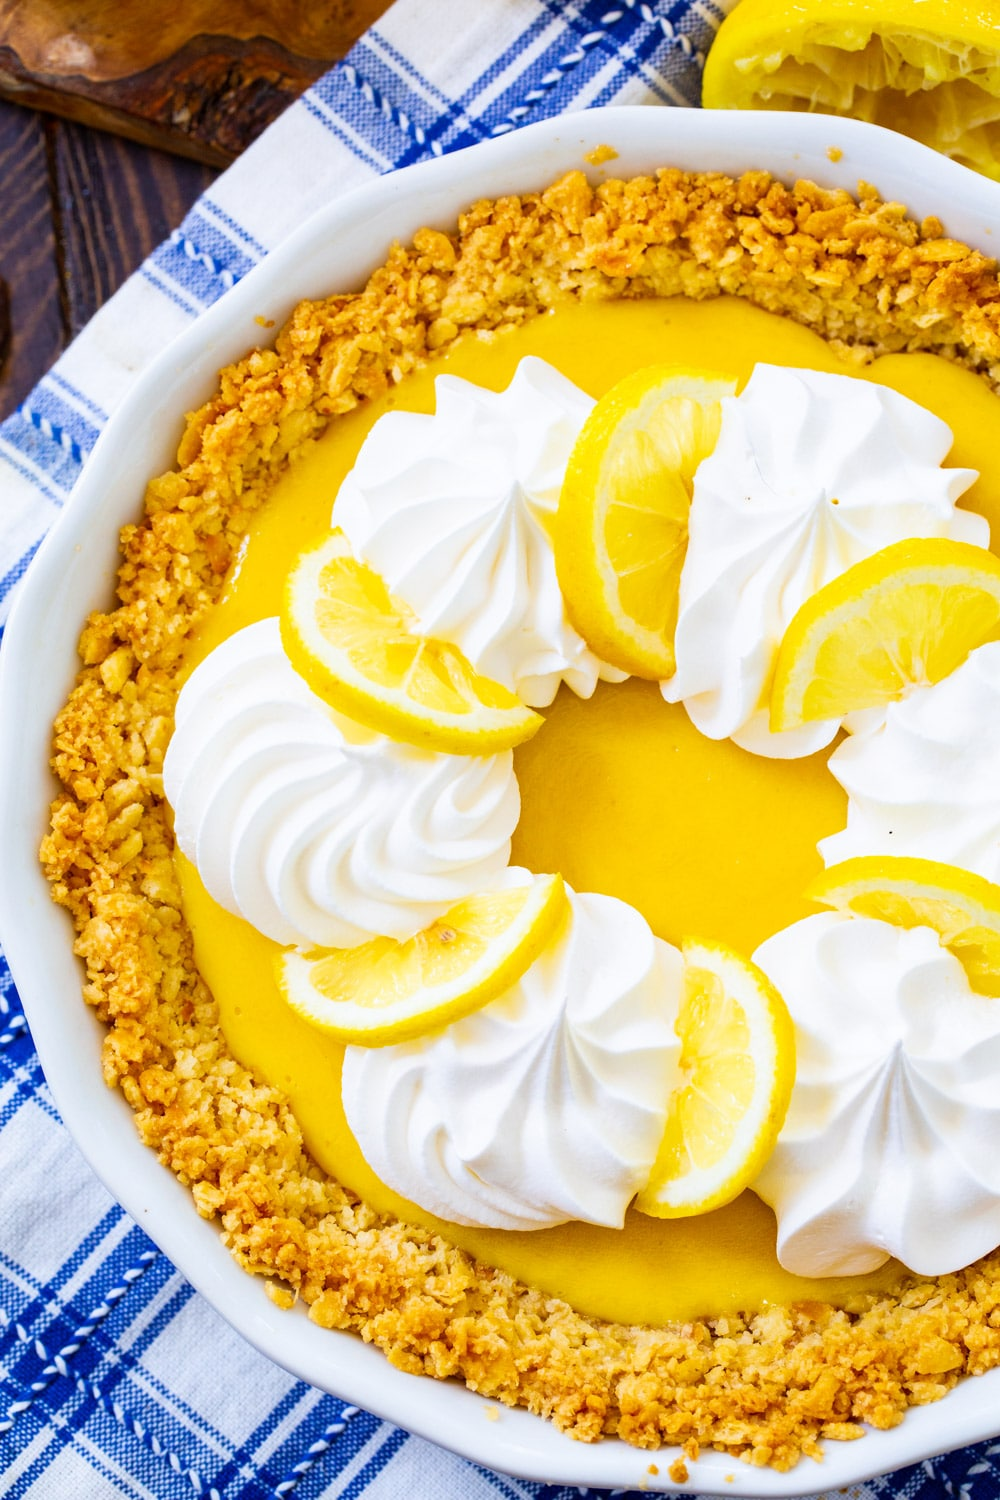 Whole pie topped with whipped cream and lemon slices.